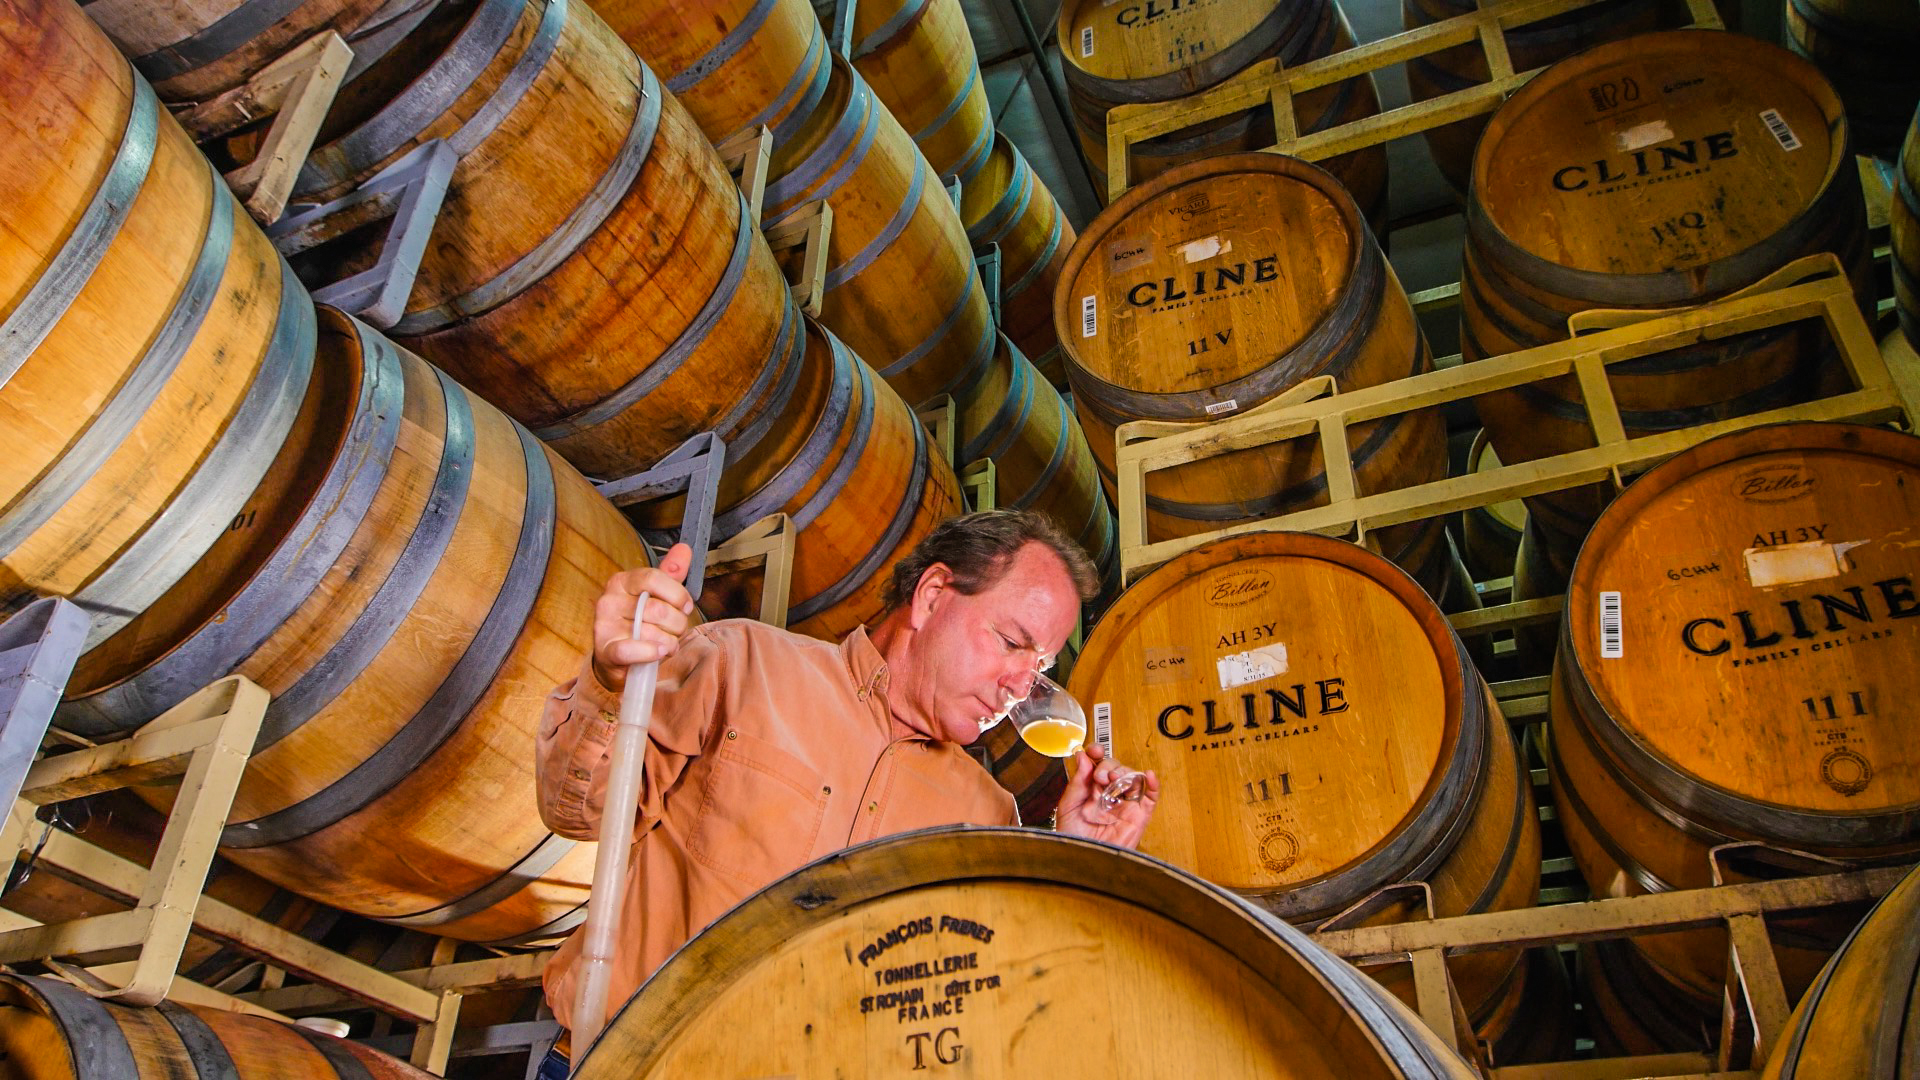 Fred Cline Winemaking